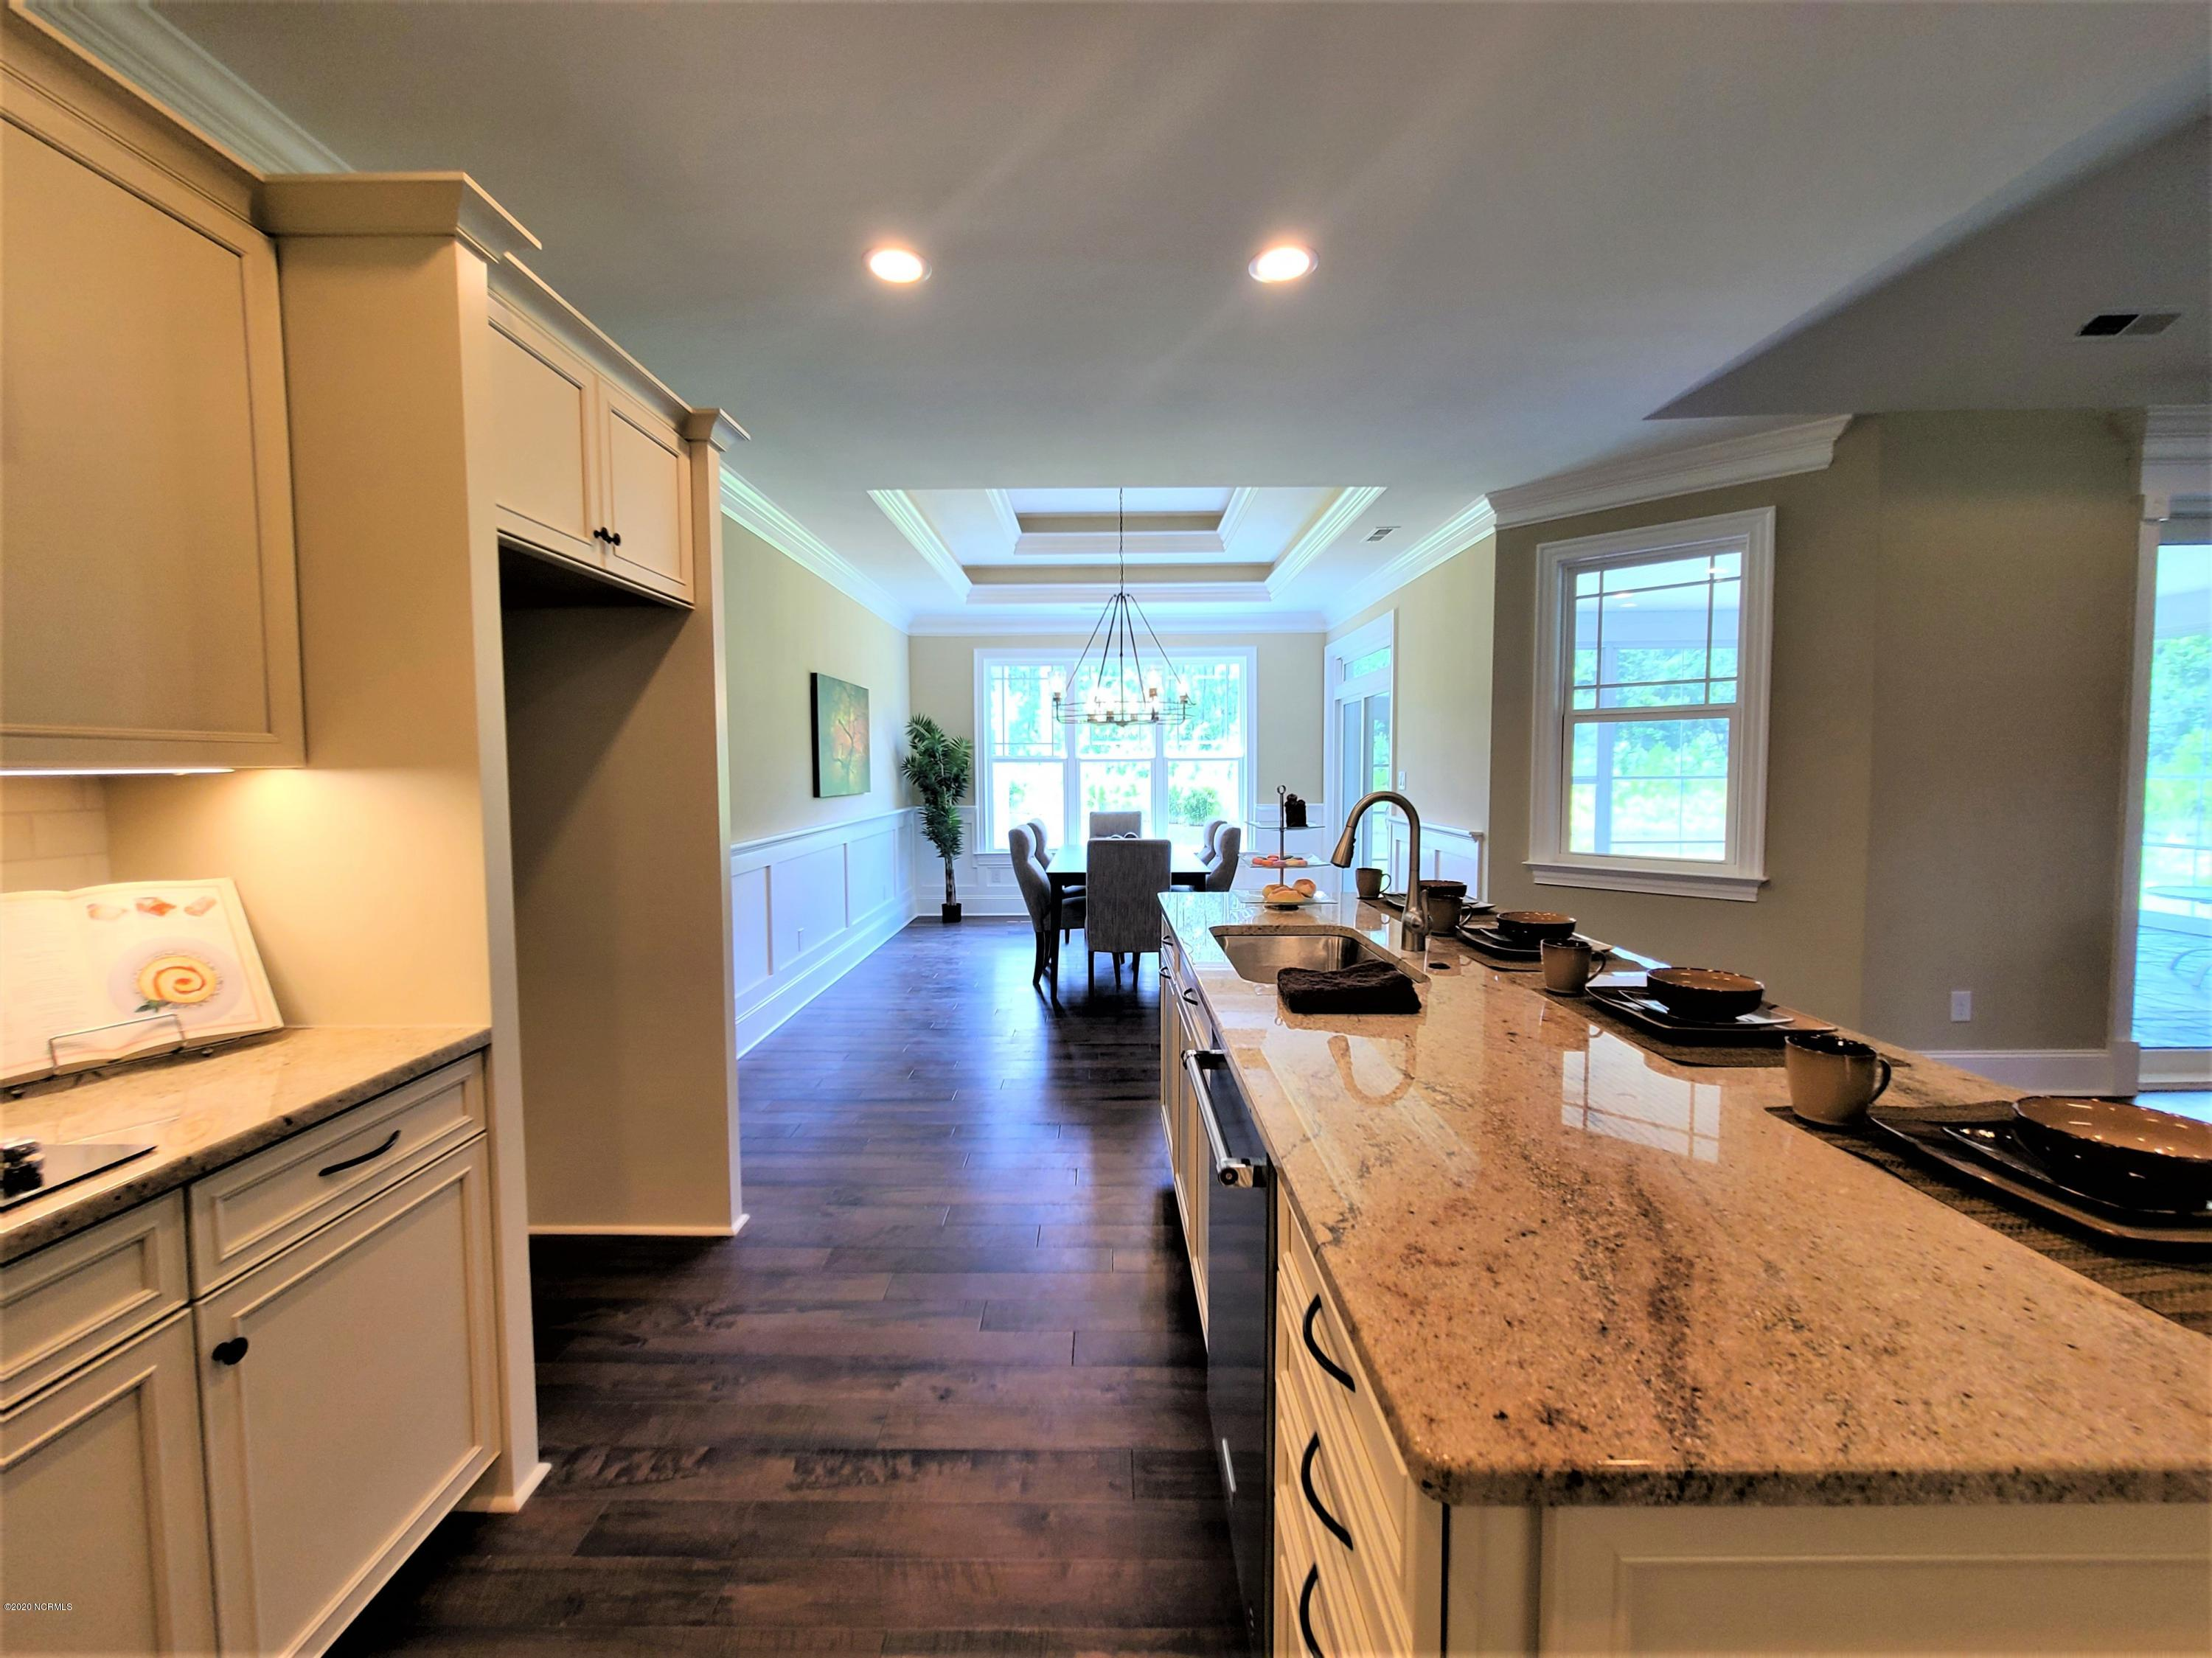 3012 Watercrest Loop, New Bern, North Carolina 28562, 3 Bedrooms Bedrooms, 8 Rooms Rooms,3 BathroomsBathrooms,Single family residence,For sale,Watercrest,100188687